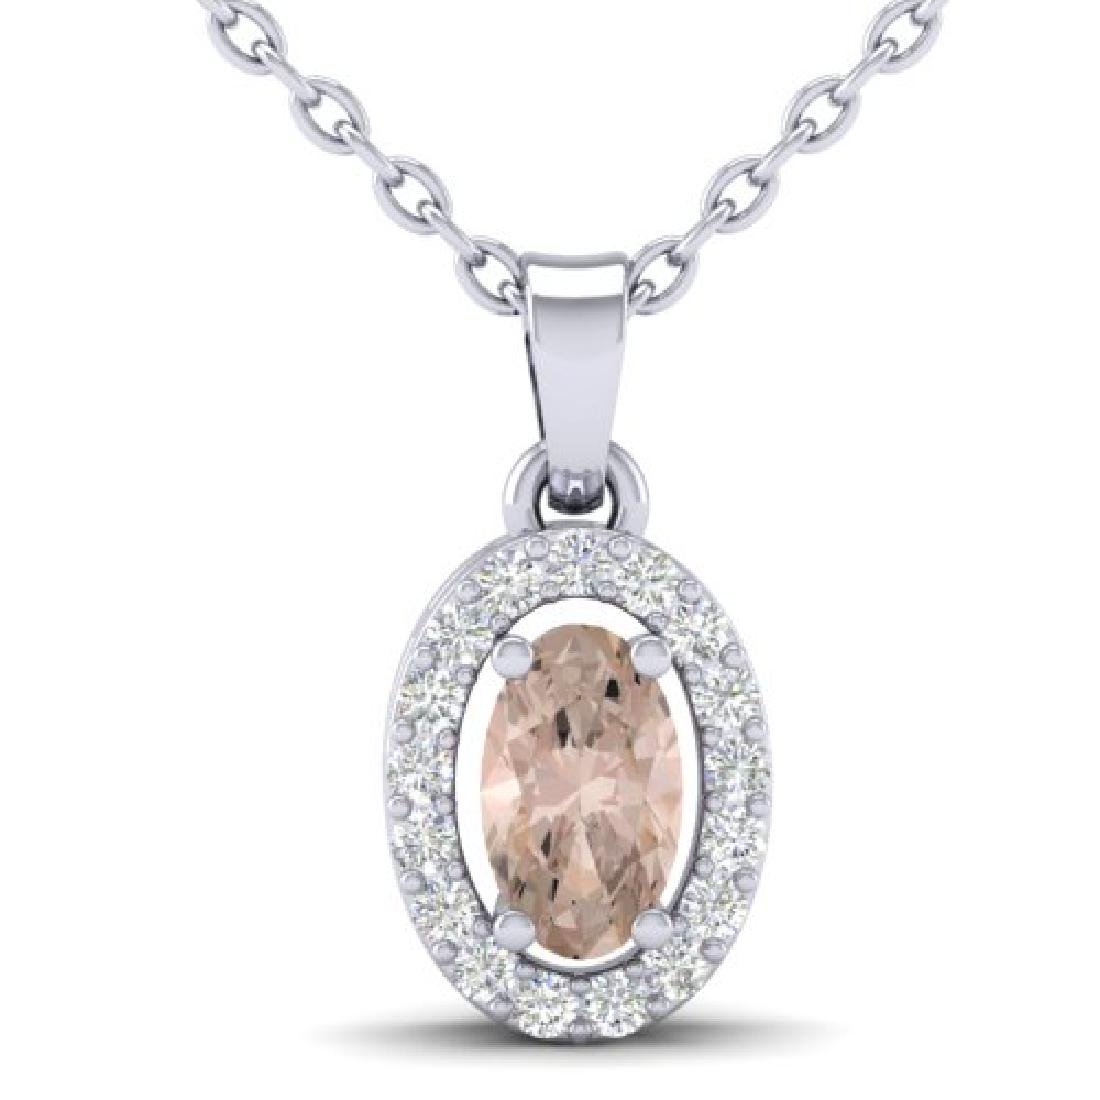 0.41 CTW Morganite & Micro Pave VS/SI Diamond Necklace